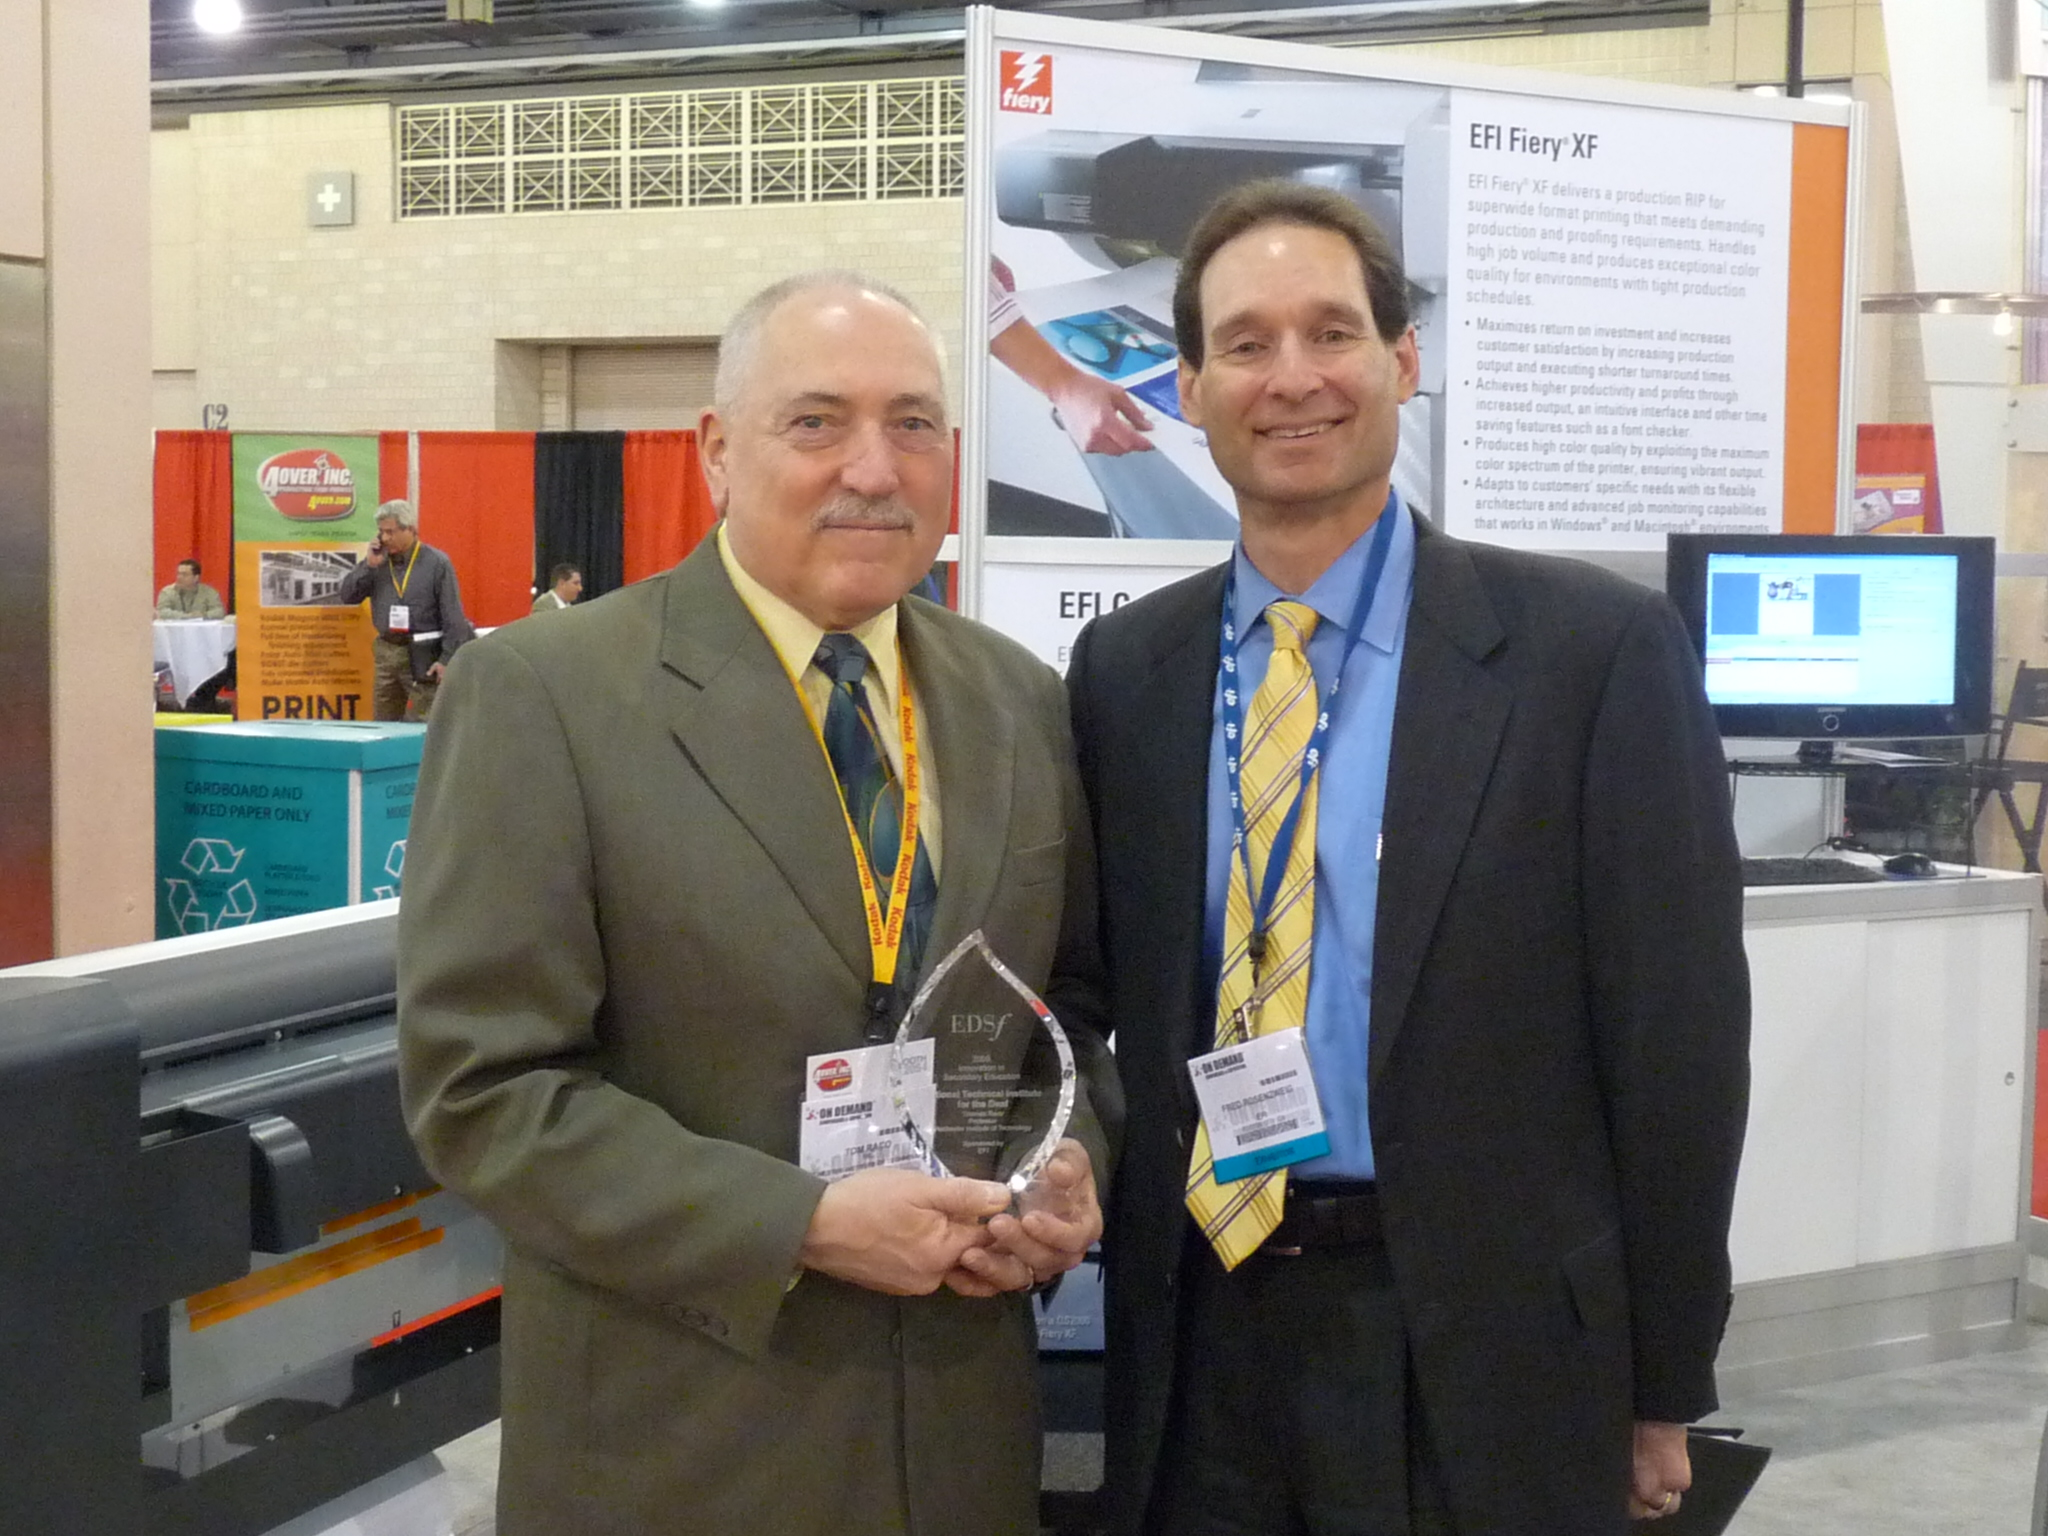 Thomas Raco, RIT, accepts the 2009 Innovation in Secondary Education Award from Fred Rosenzweig, EFI